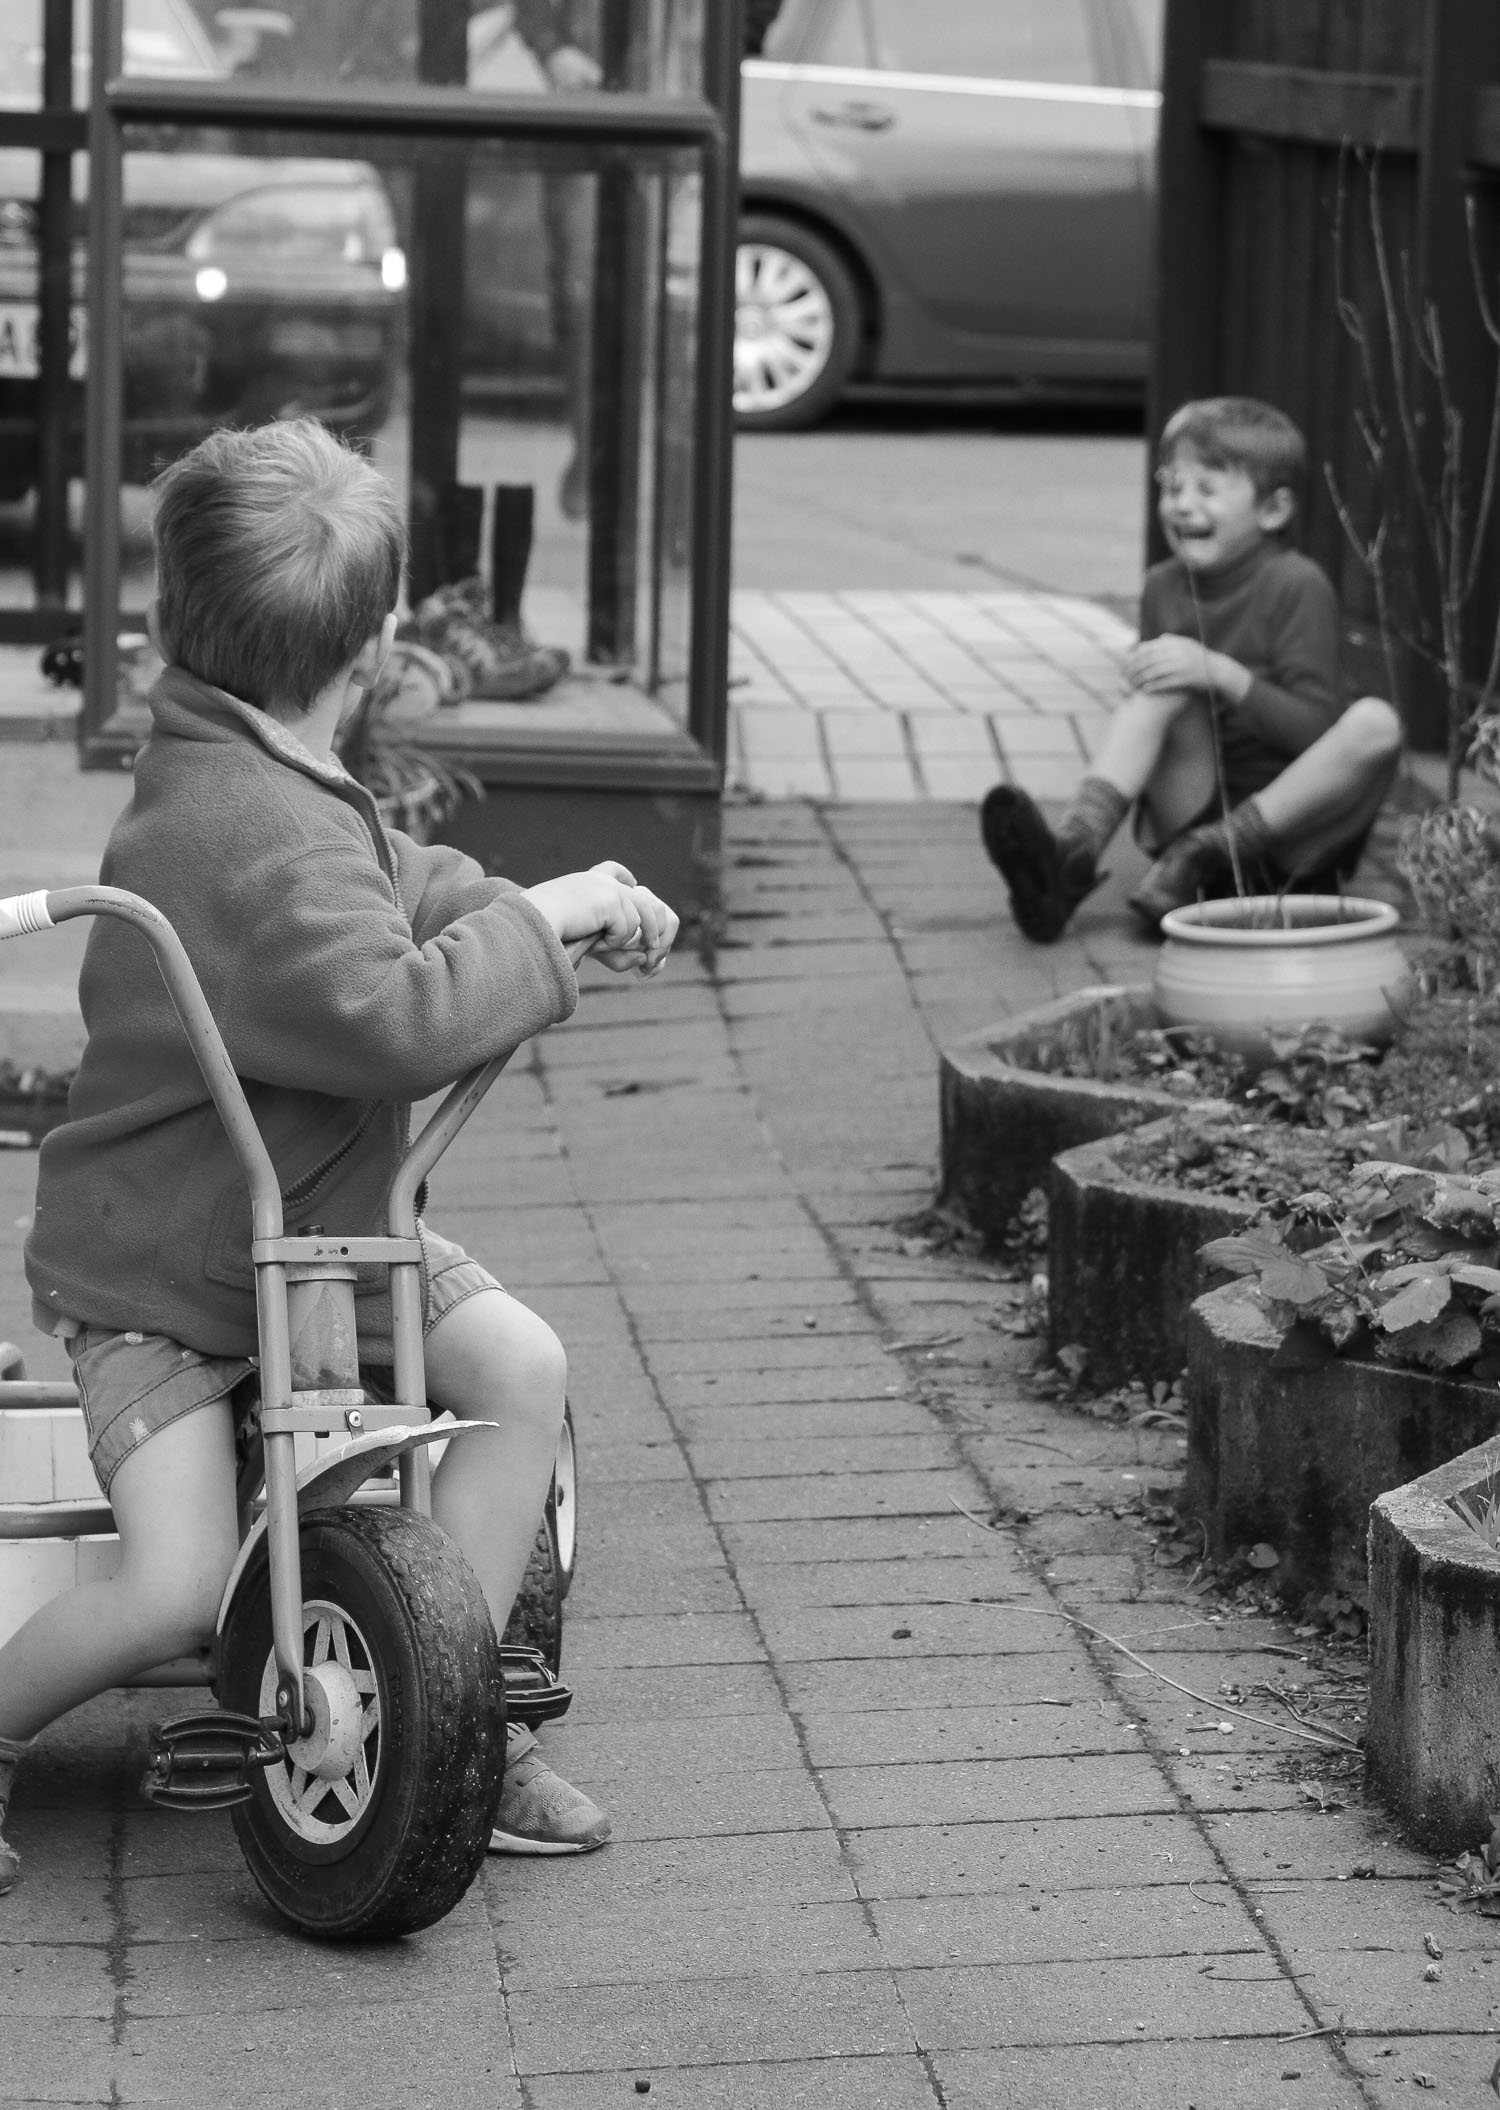 brothers-playing-together-on-trike-outside-family-home-black-and-white-one-boy-fallen-off-trike.jpg